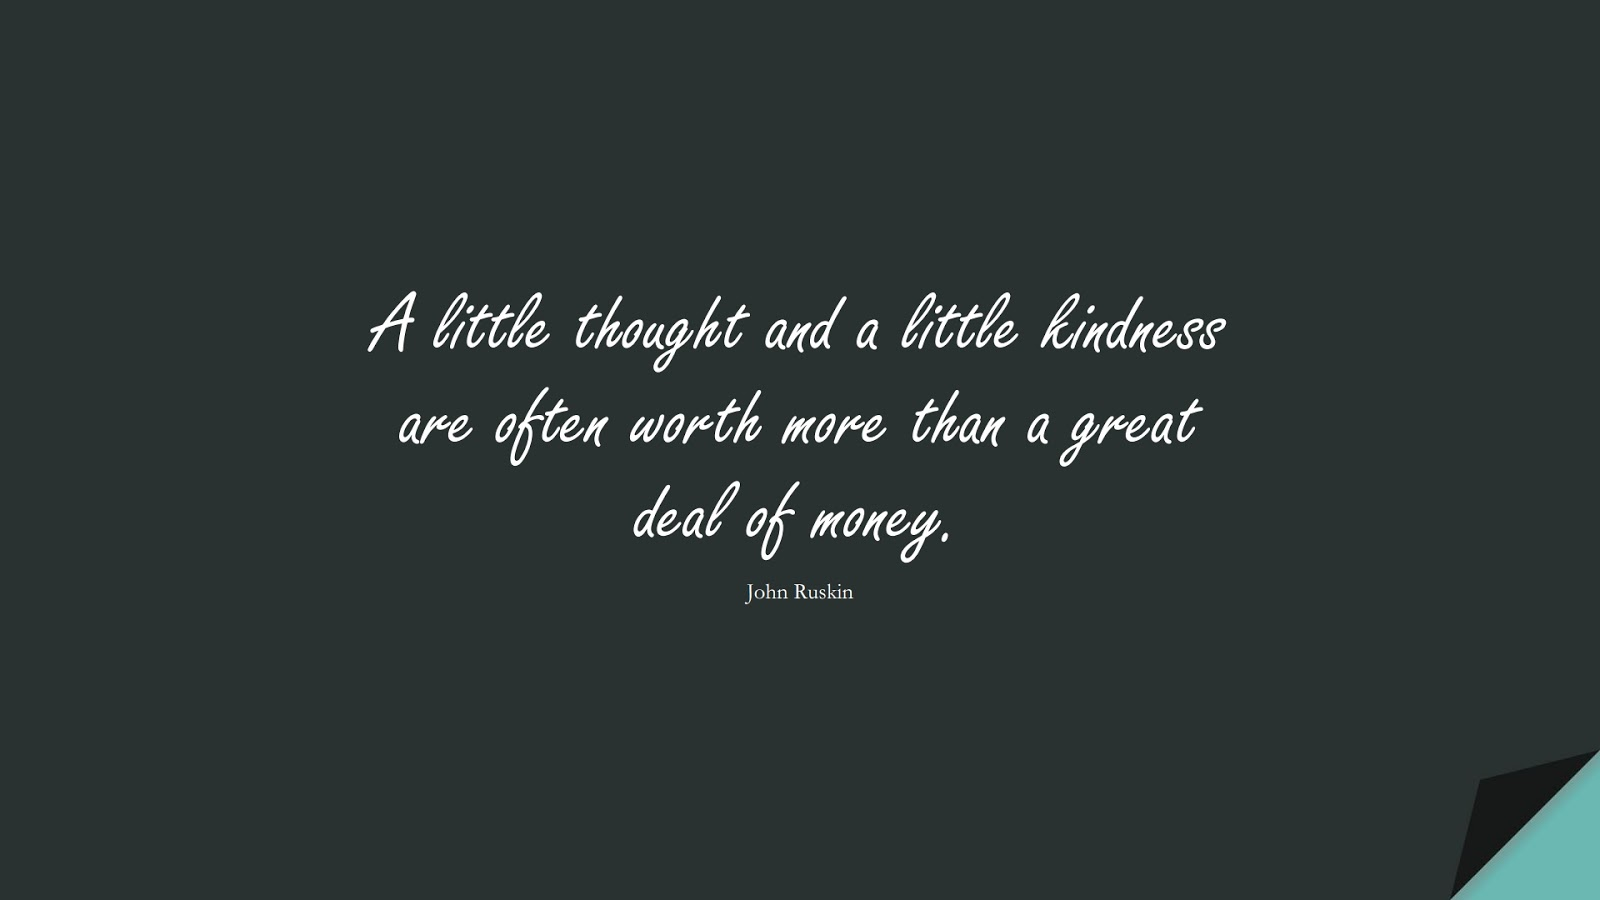 A little thought and a little kindness are often worth more than a great deal of money. (John Ruskin);  #MoneyQuotes